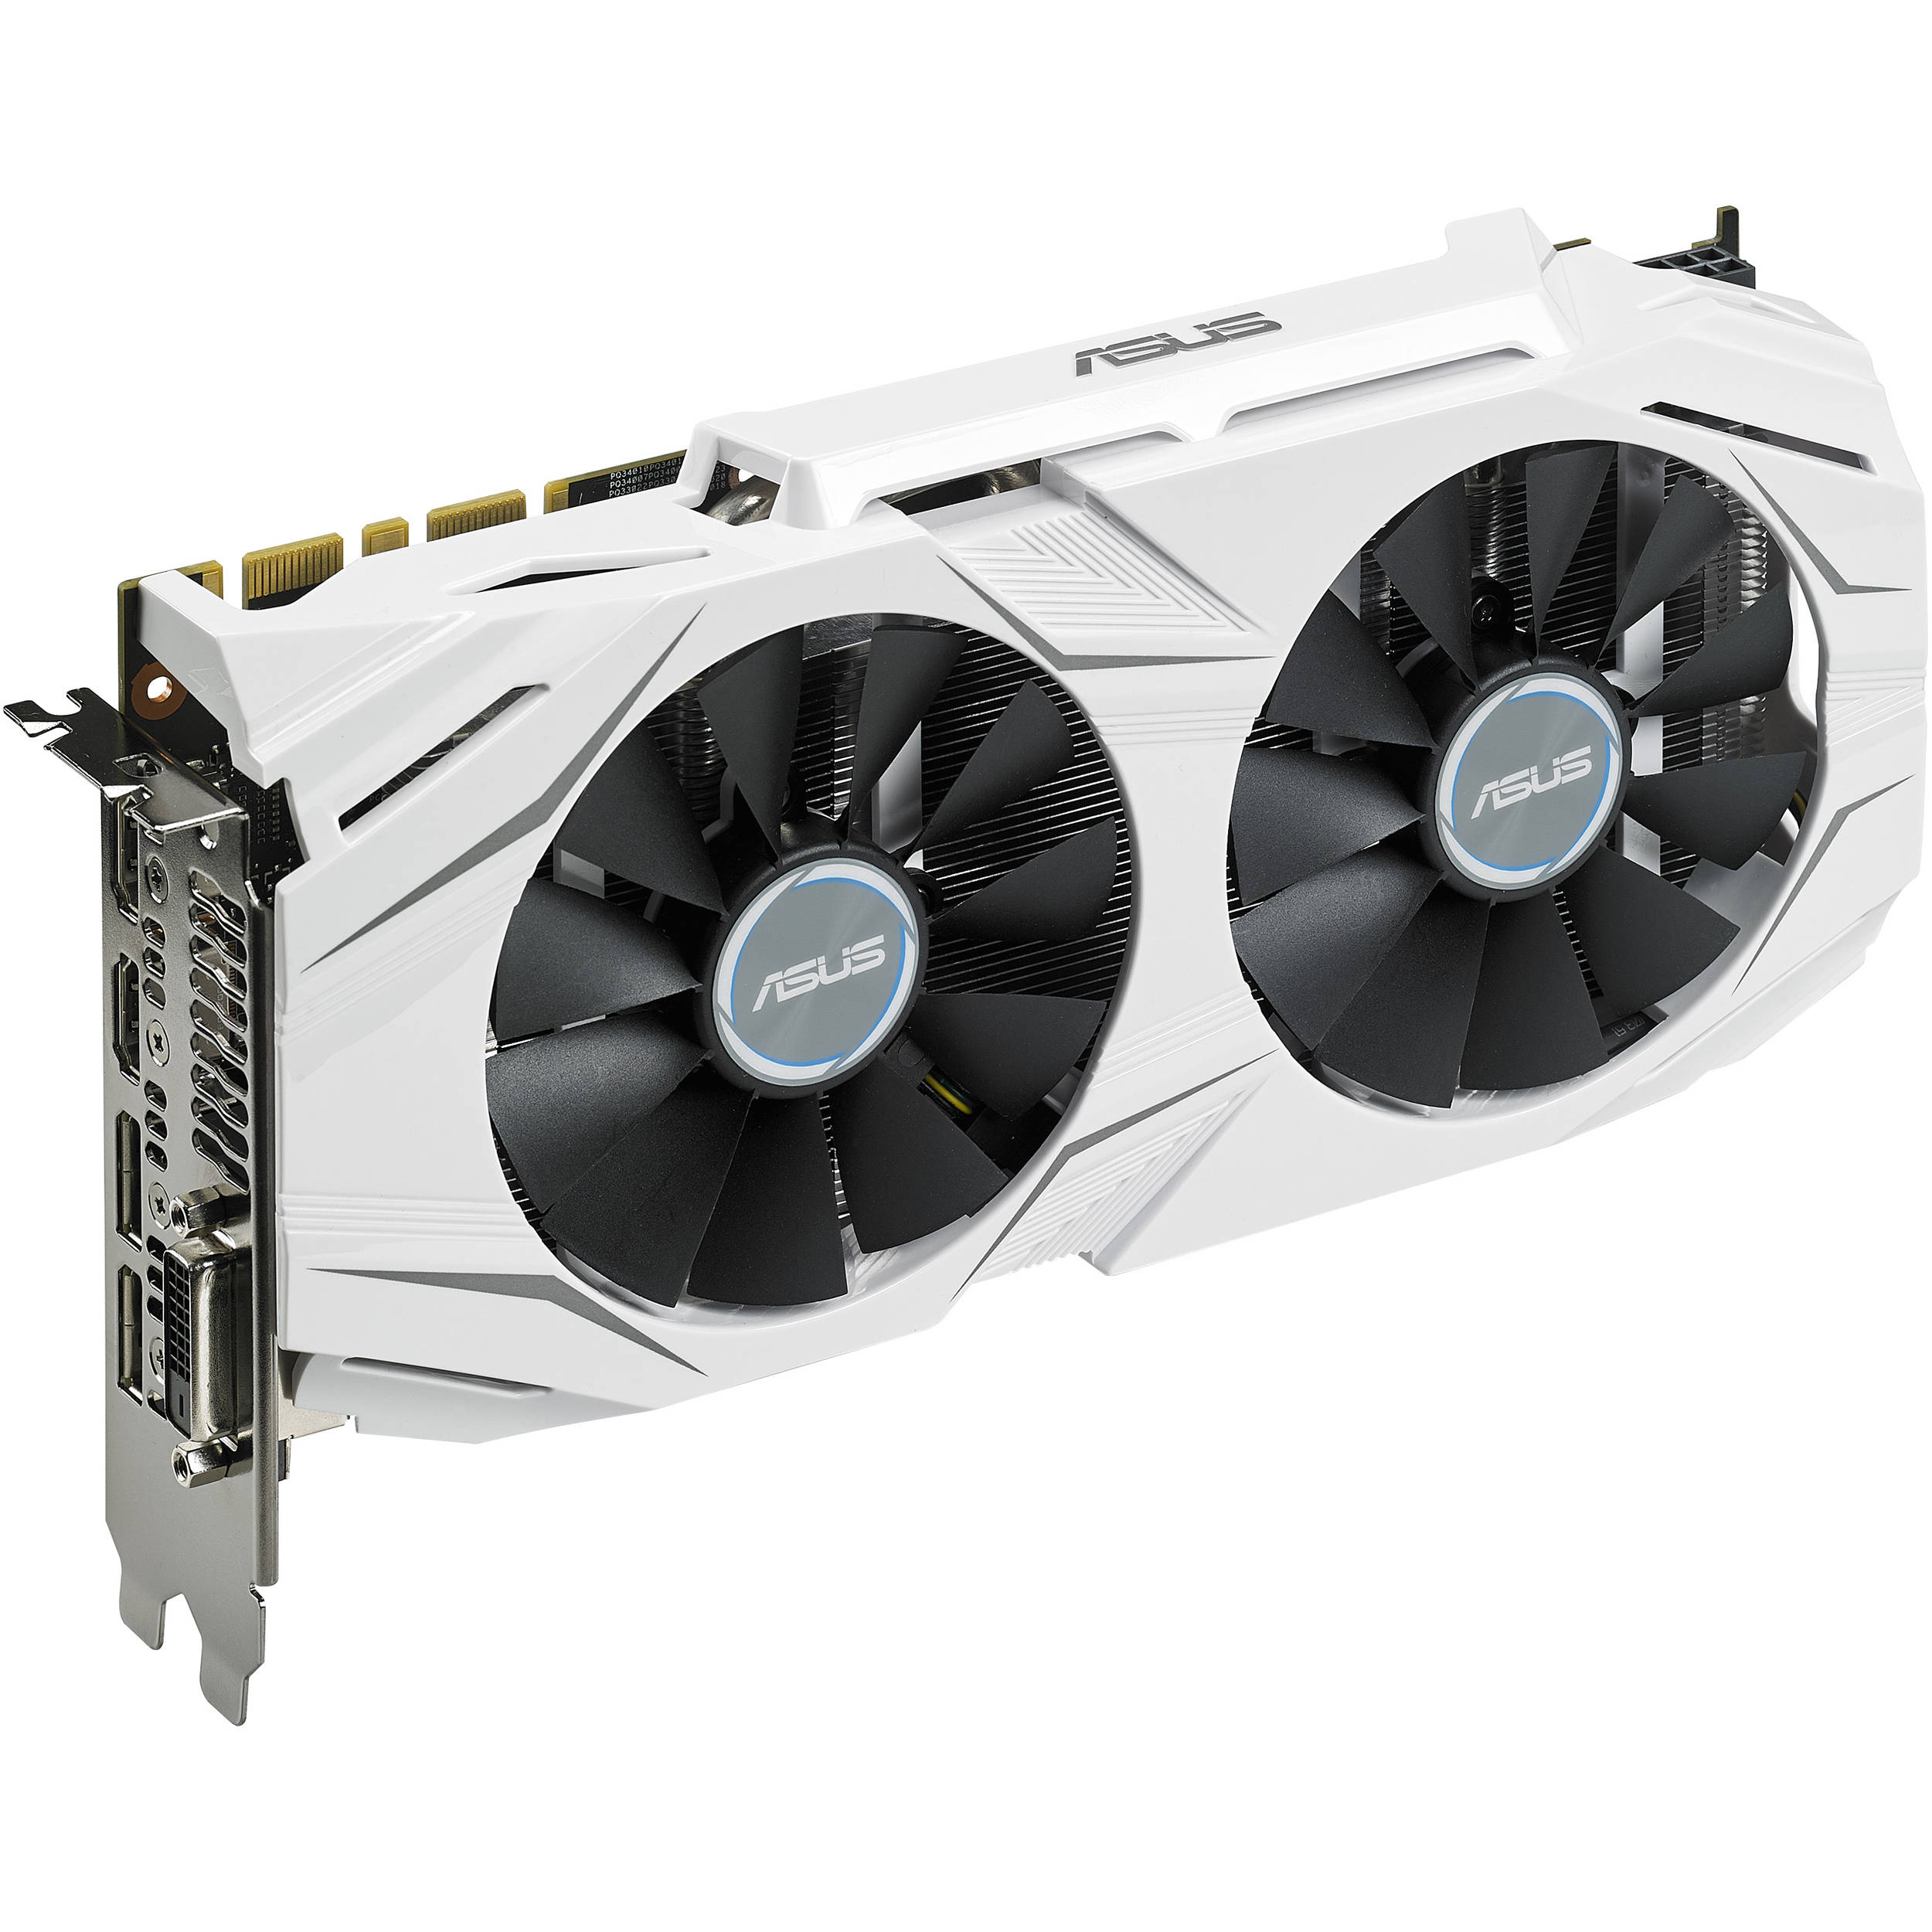 https://www.bhphotovideo.com/images/images2500x2500/asus_dual_gtx1070_o8g_geforce_dual_gtx_1070_o8g_1280346.jpg